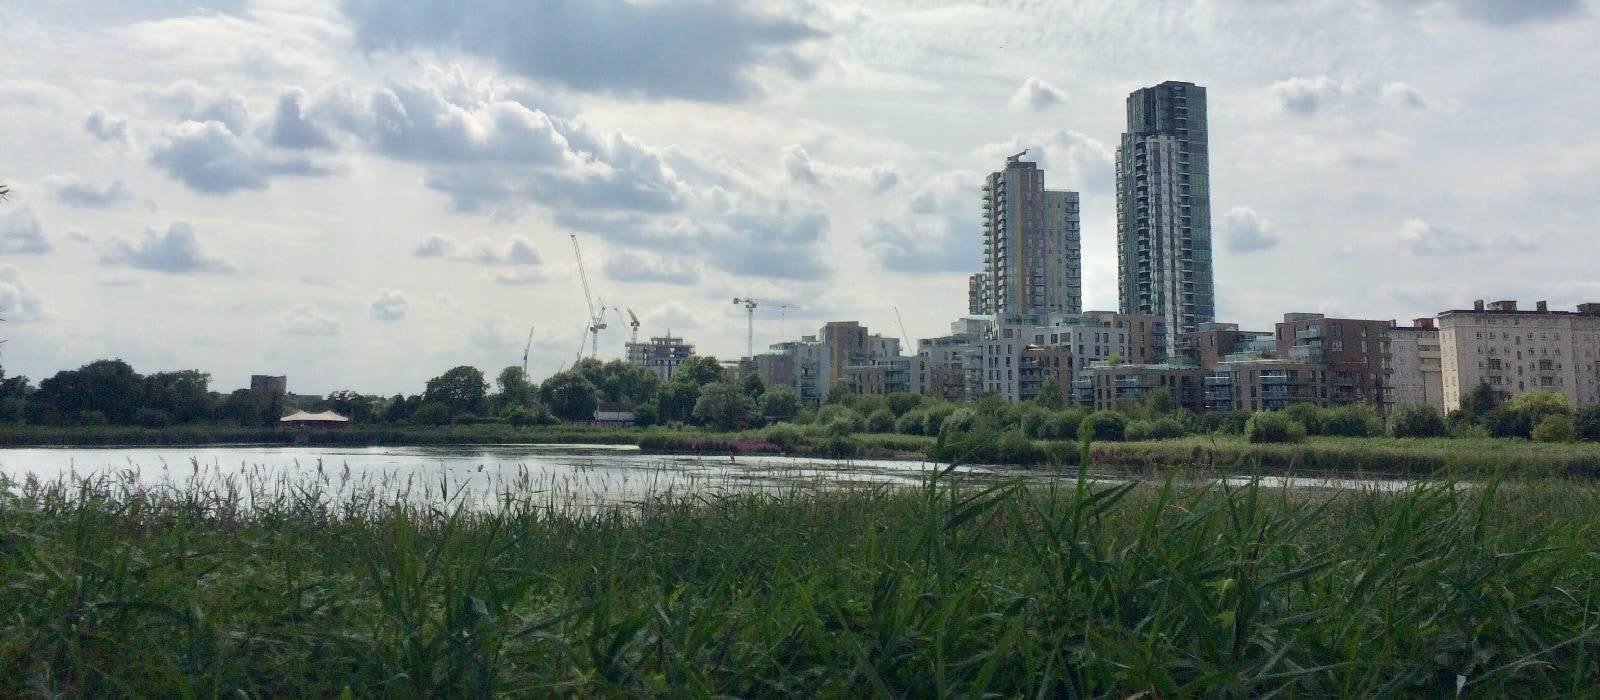 A picture of Woodberry Wetlands, showing the wetlands and Manor House developments.